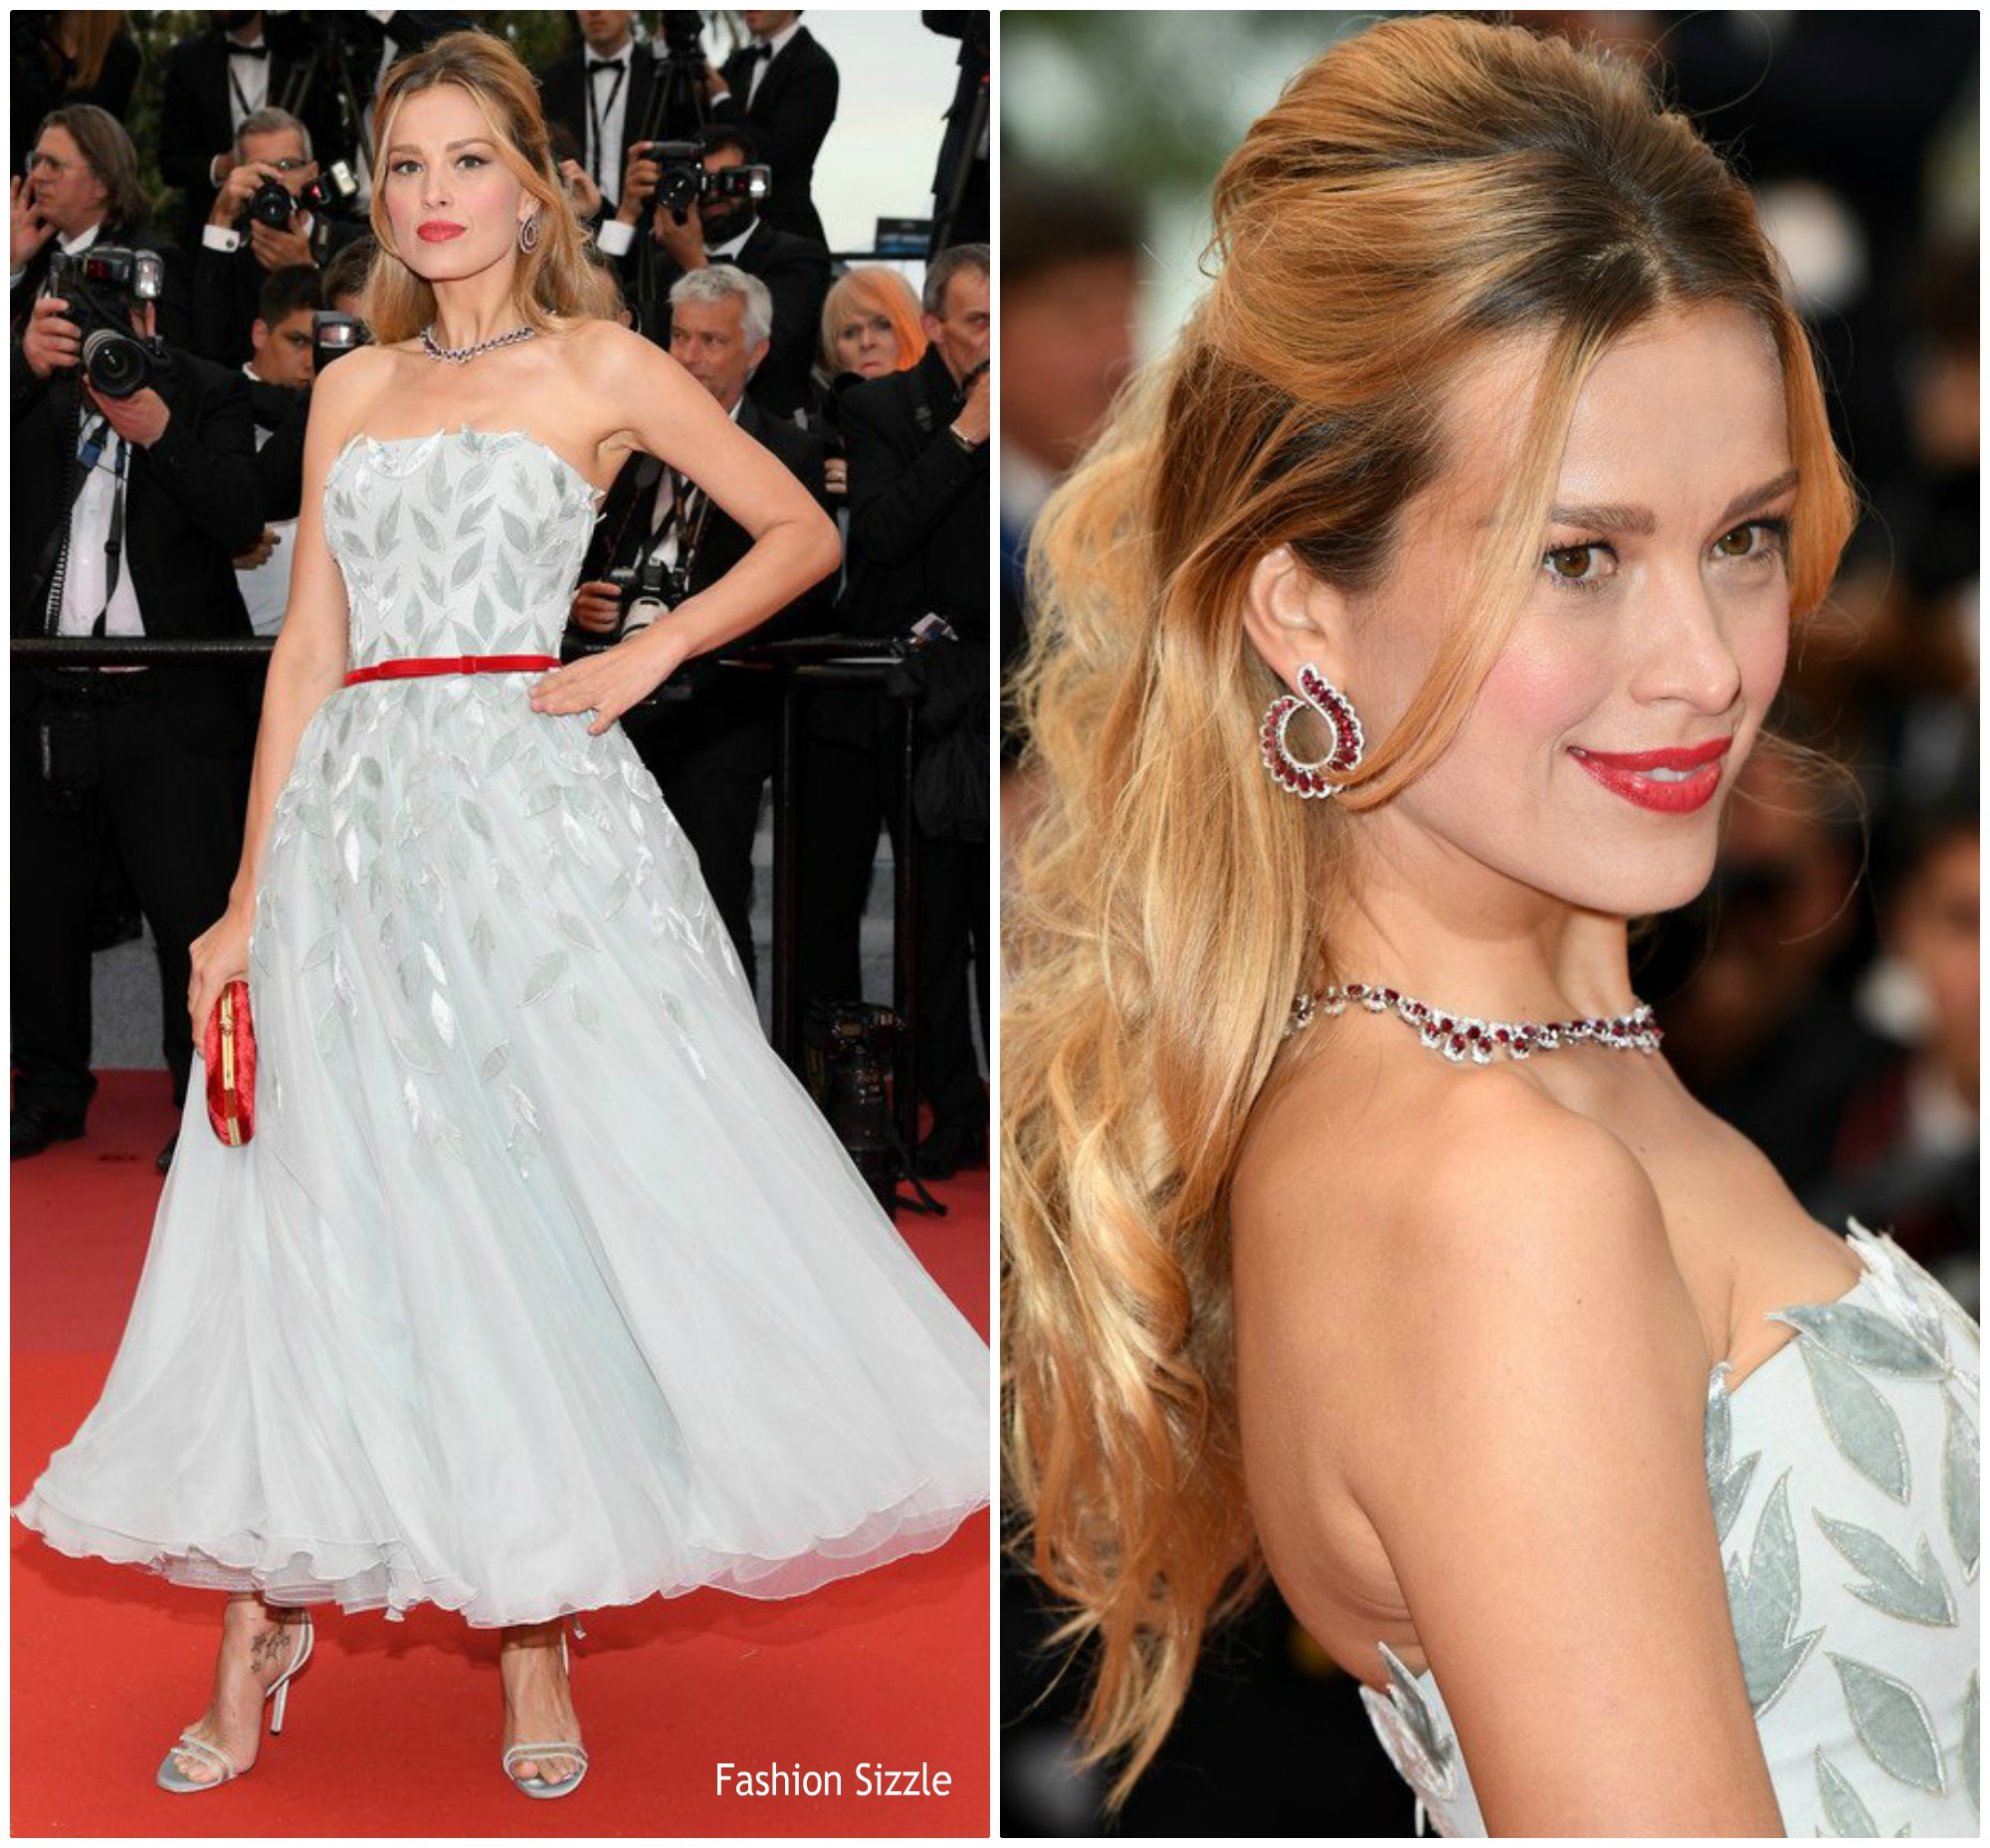 petra-memcova-in-georges-chakra-couture-brurning-cannes-film-festival-premiere